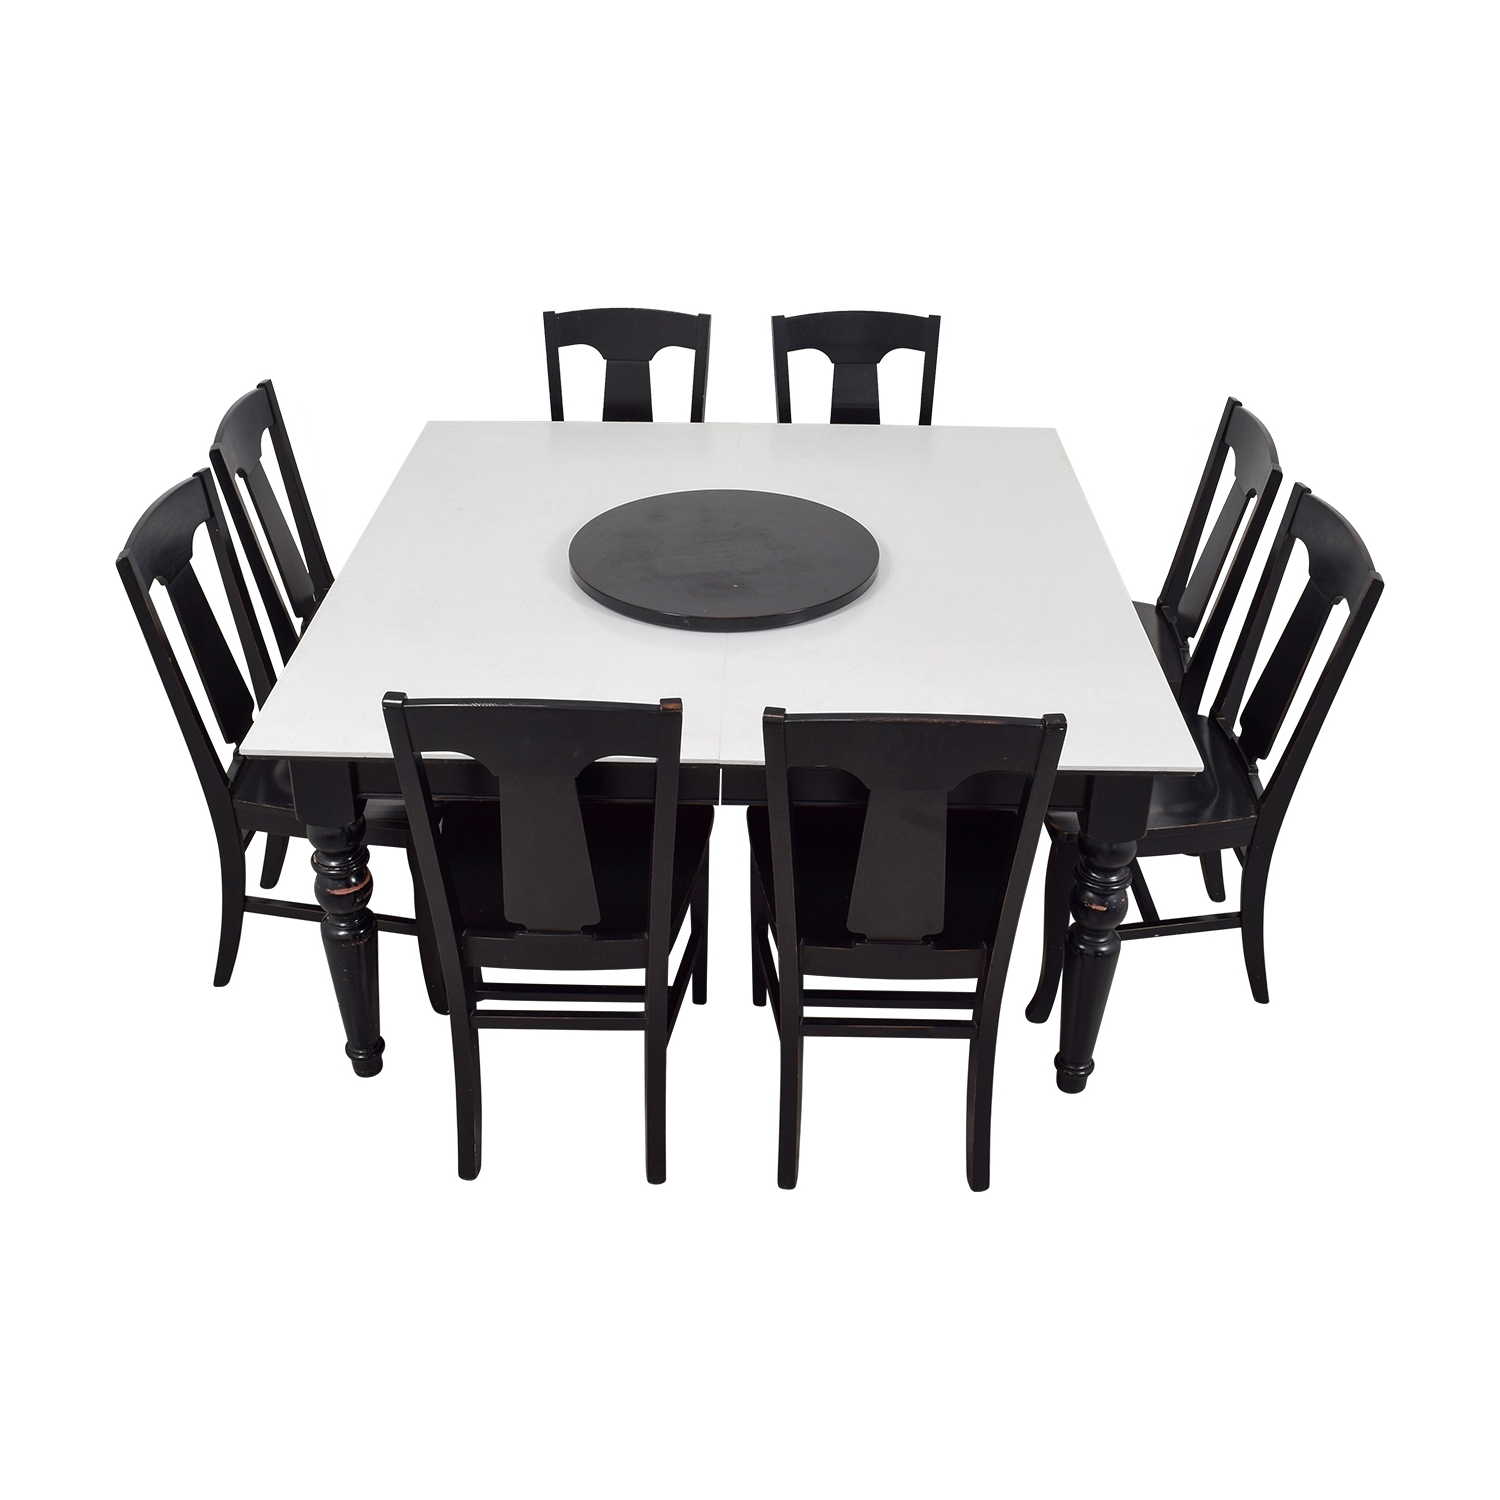 [%79% Off – Pottery Barn Pottery Barn White And Black Extendable With Regard To Favorite Black Extendable Dining Tables Sets|Black Extendable Dining Tables Sets With Regard To Latest 79% Off – Pottery Barn Pottery Barn White And Black Extendable|Well Liked Black Extendable Dining Tables Sets Intended For 79% Off – Pottery Barn Pottery Barn White And Black Extendable|Widely Used 79% Off – Pottery Barn Pottery Barn White And Black Extendable Within Black Extendable Dining Tables Sets%] (View 20 of 25)